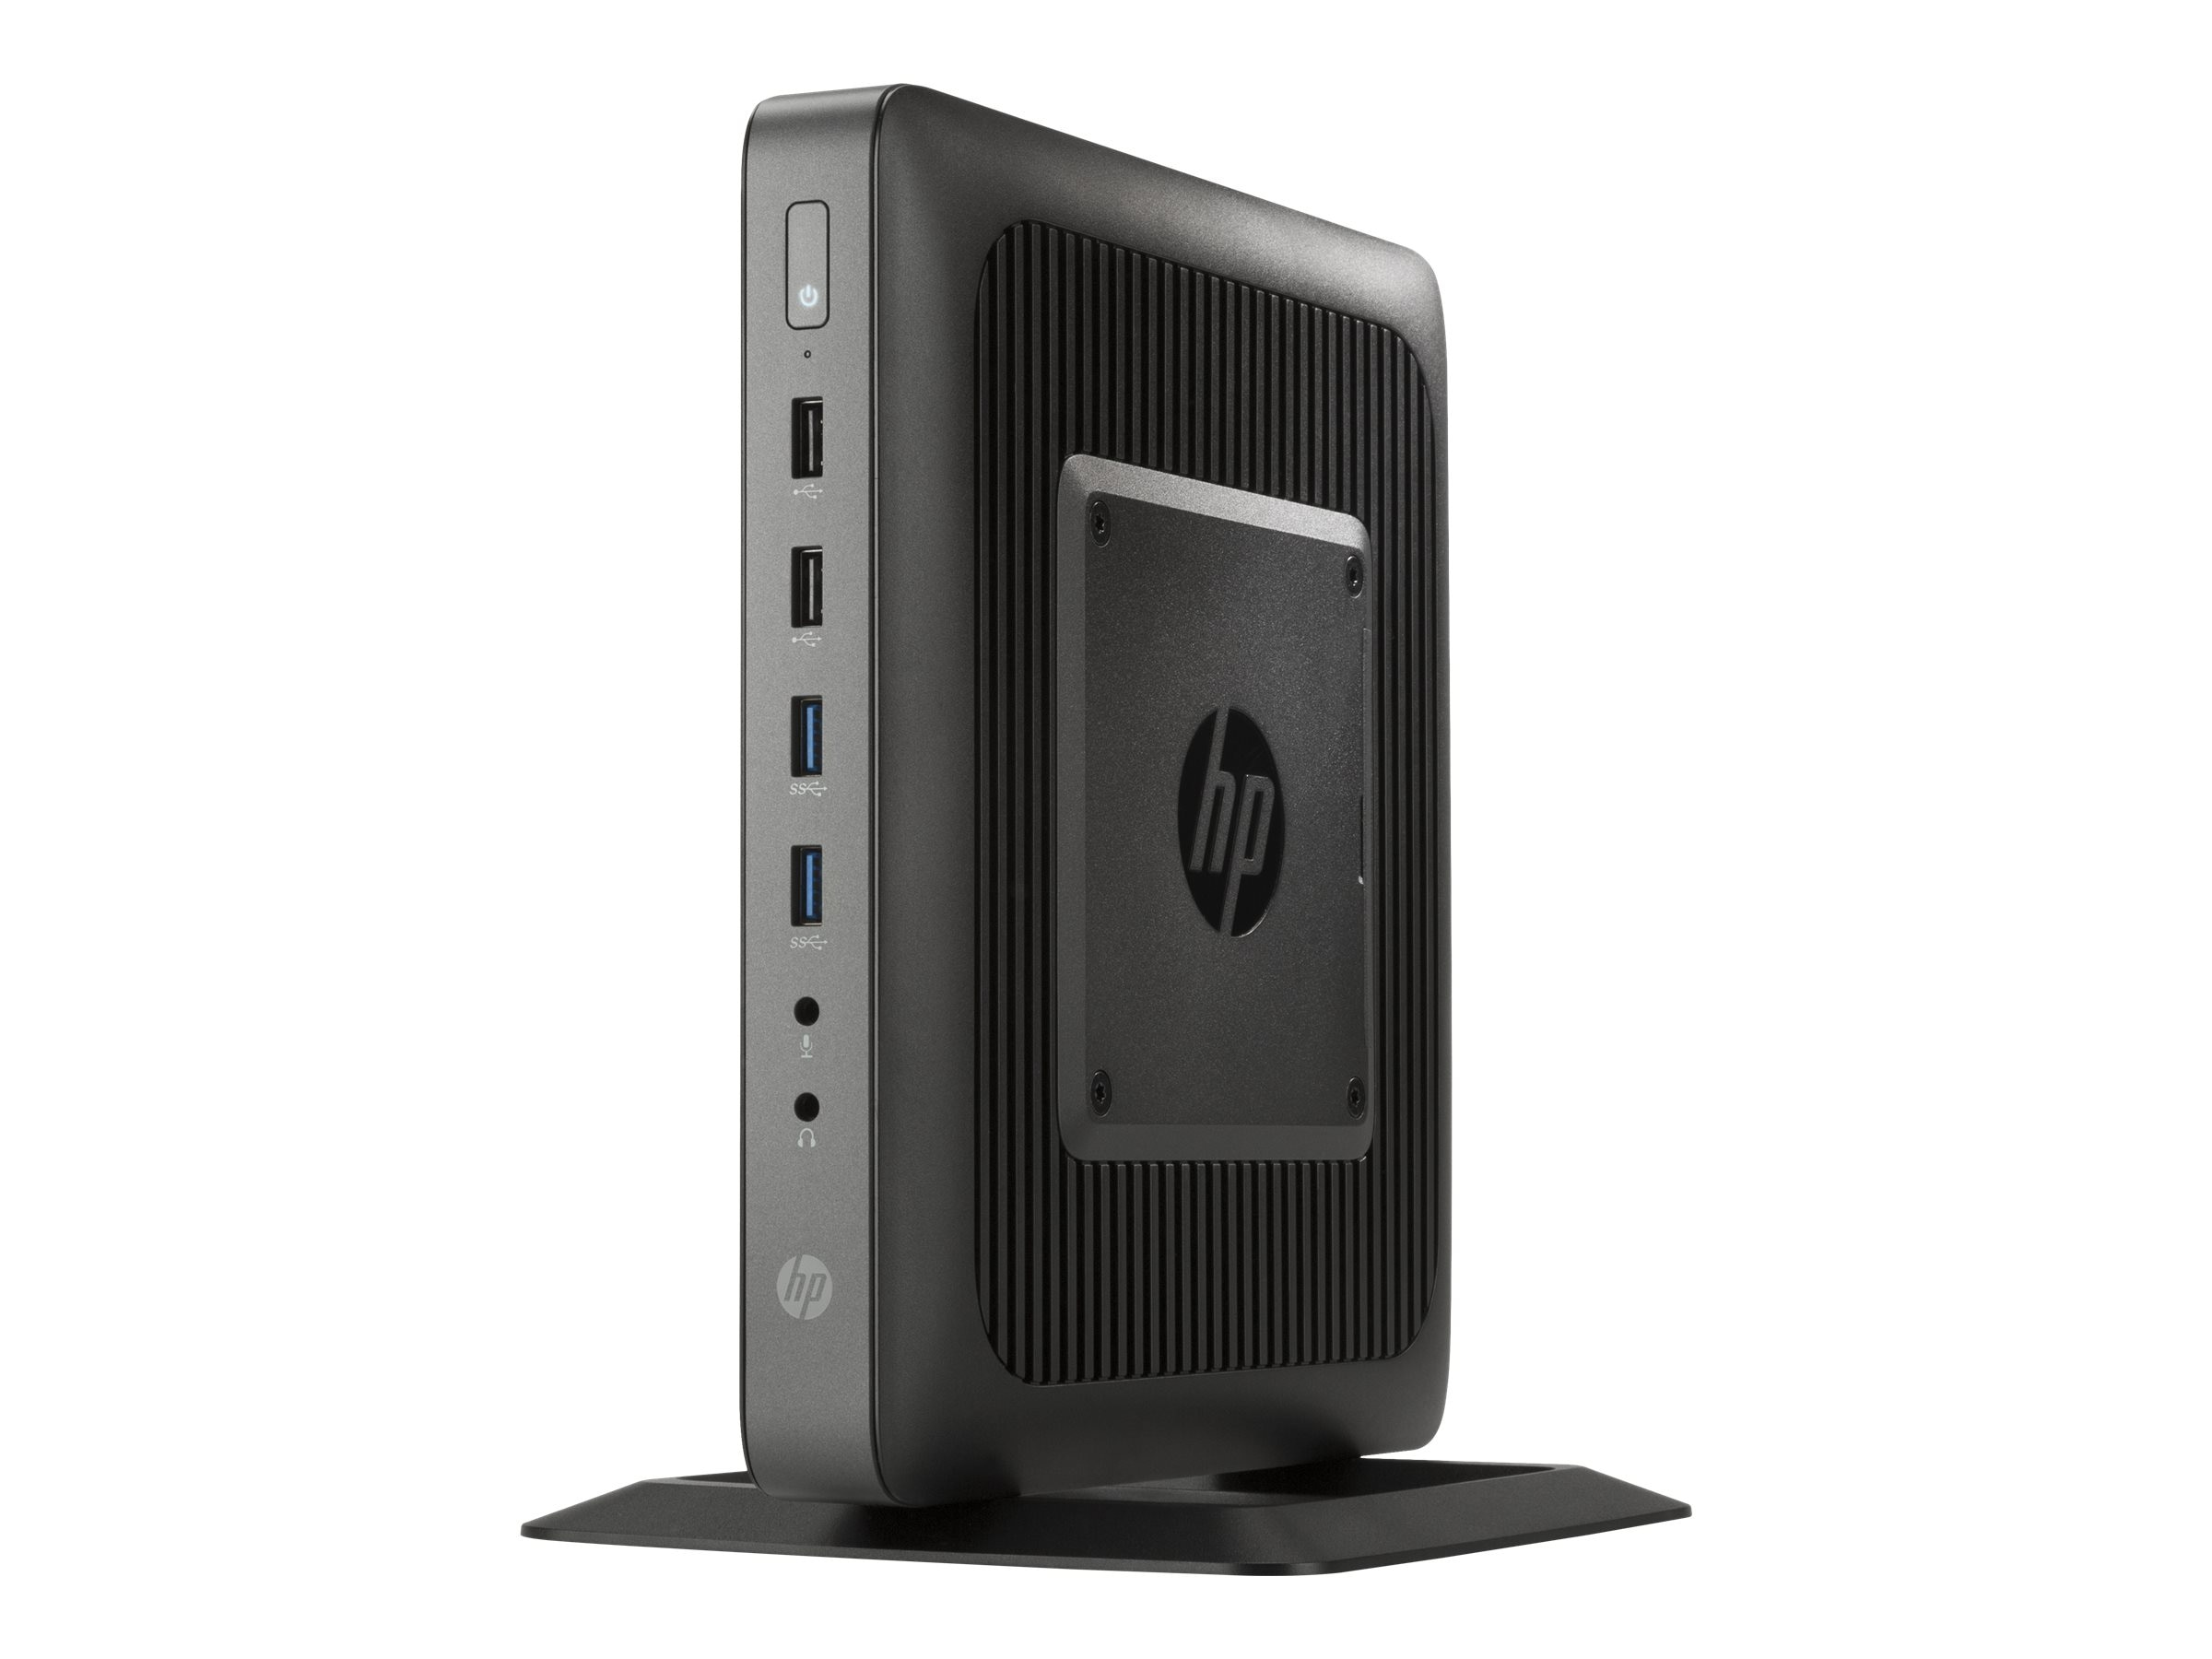 HP t620 Flexible Thin Client AMD QC GX-415GA 1.5GHz 8GB 64GB Flash HD8330E W10 IoT, V2V54UA#ABA